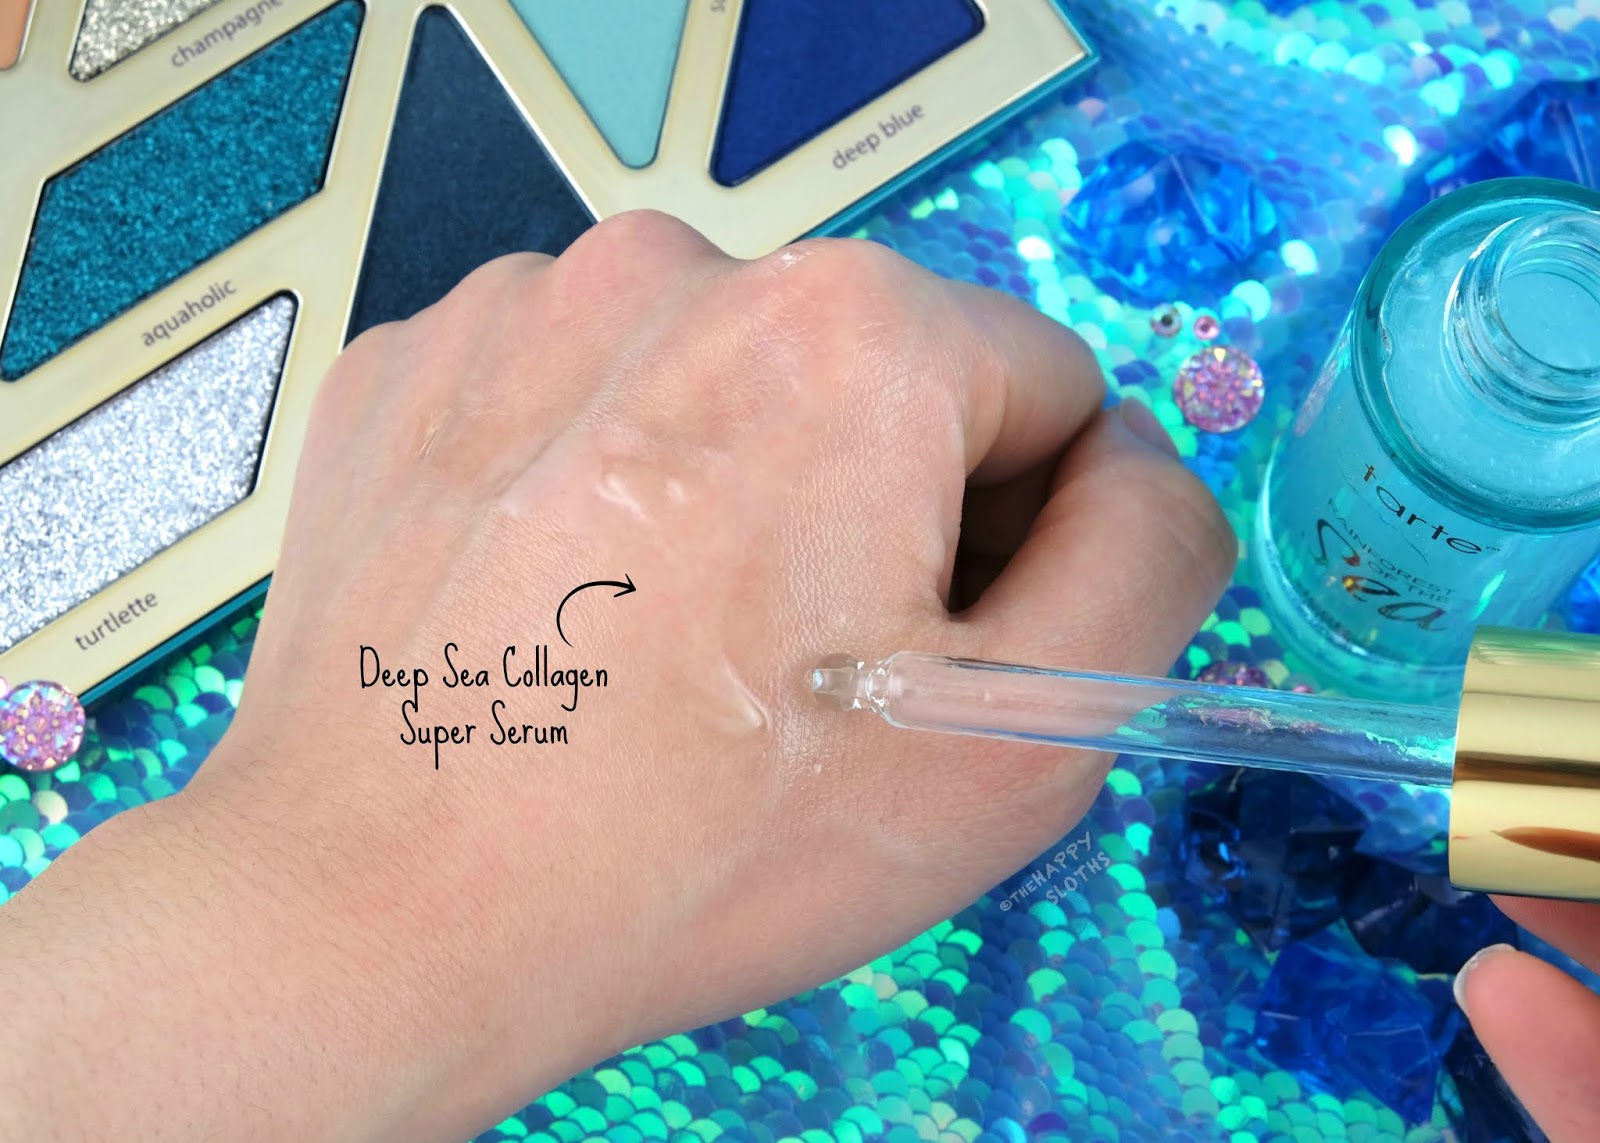 Tarte | Deep Sea Collagen Super Serum: Review and Swatches